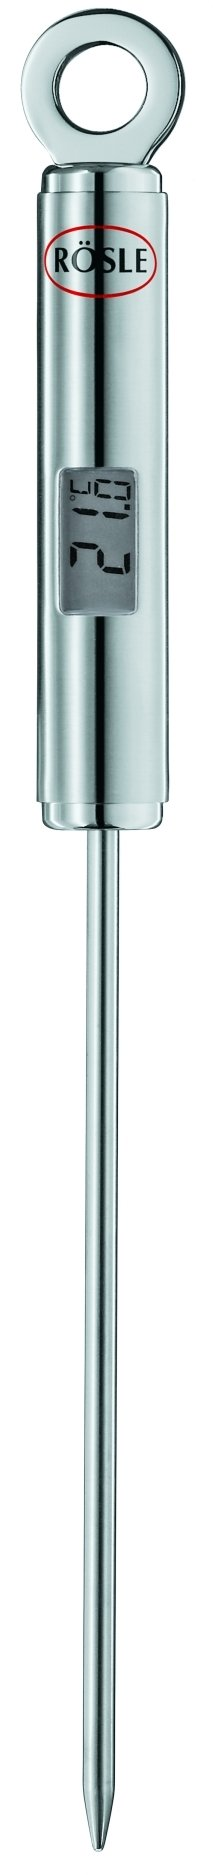 R?sle gourmet thermometer